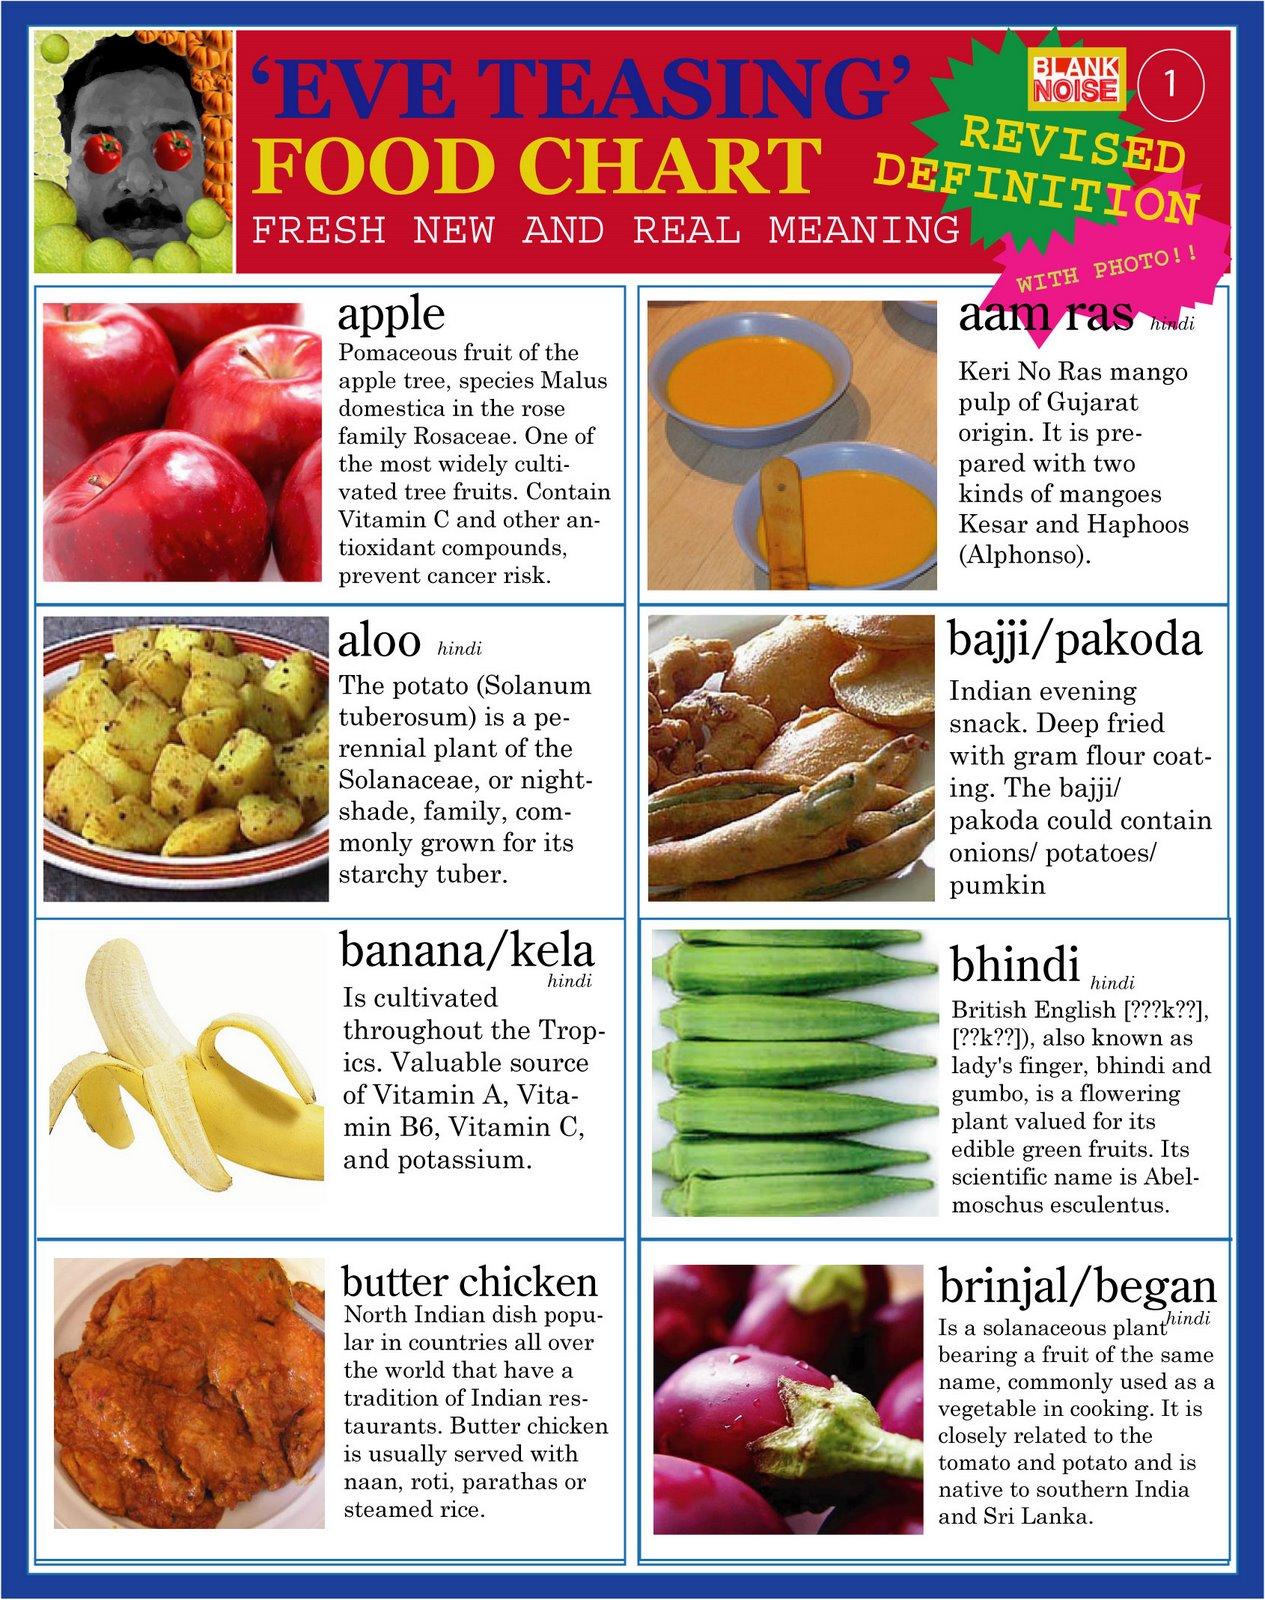 Eve teasing food chart  also chart  blank noise rh blanknoise